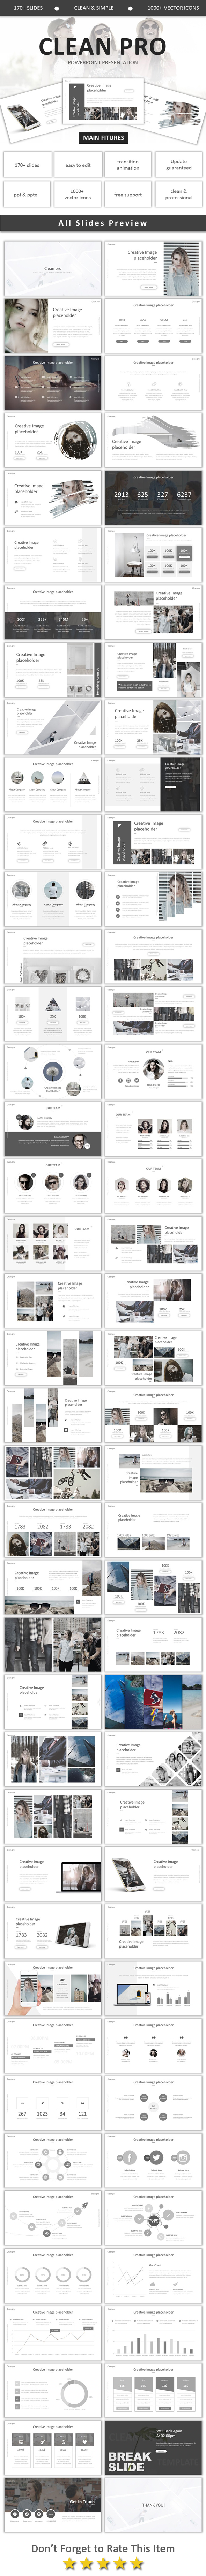 GraphicRiver Clean Pro Powerpoint 20784166